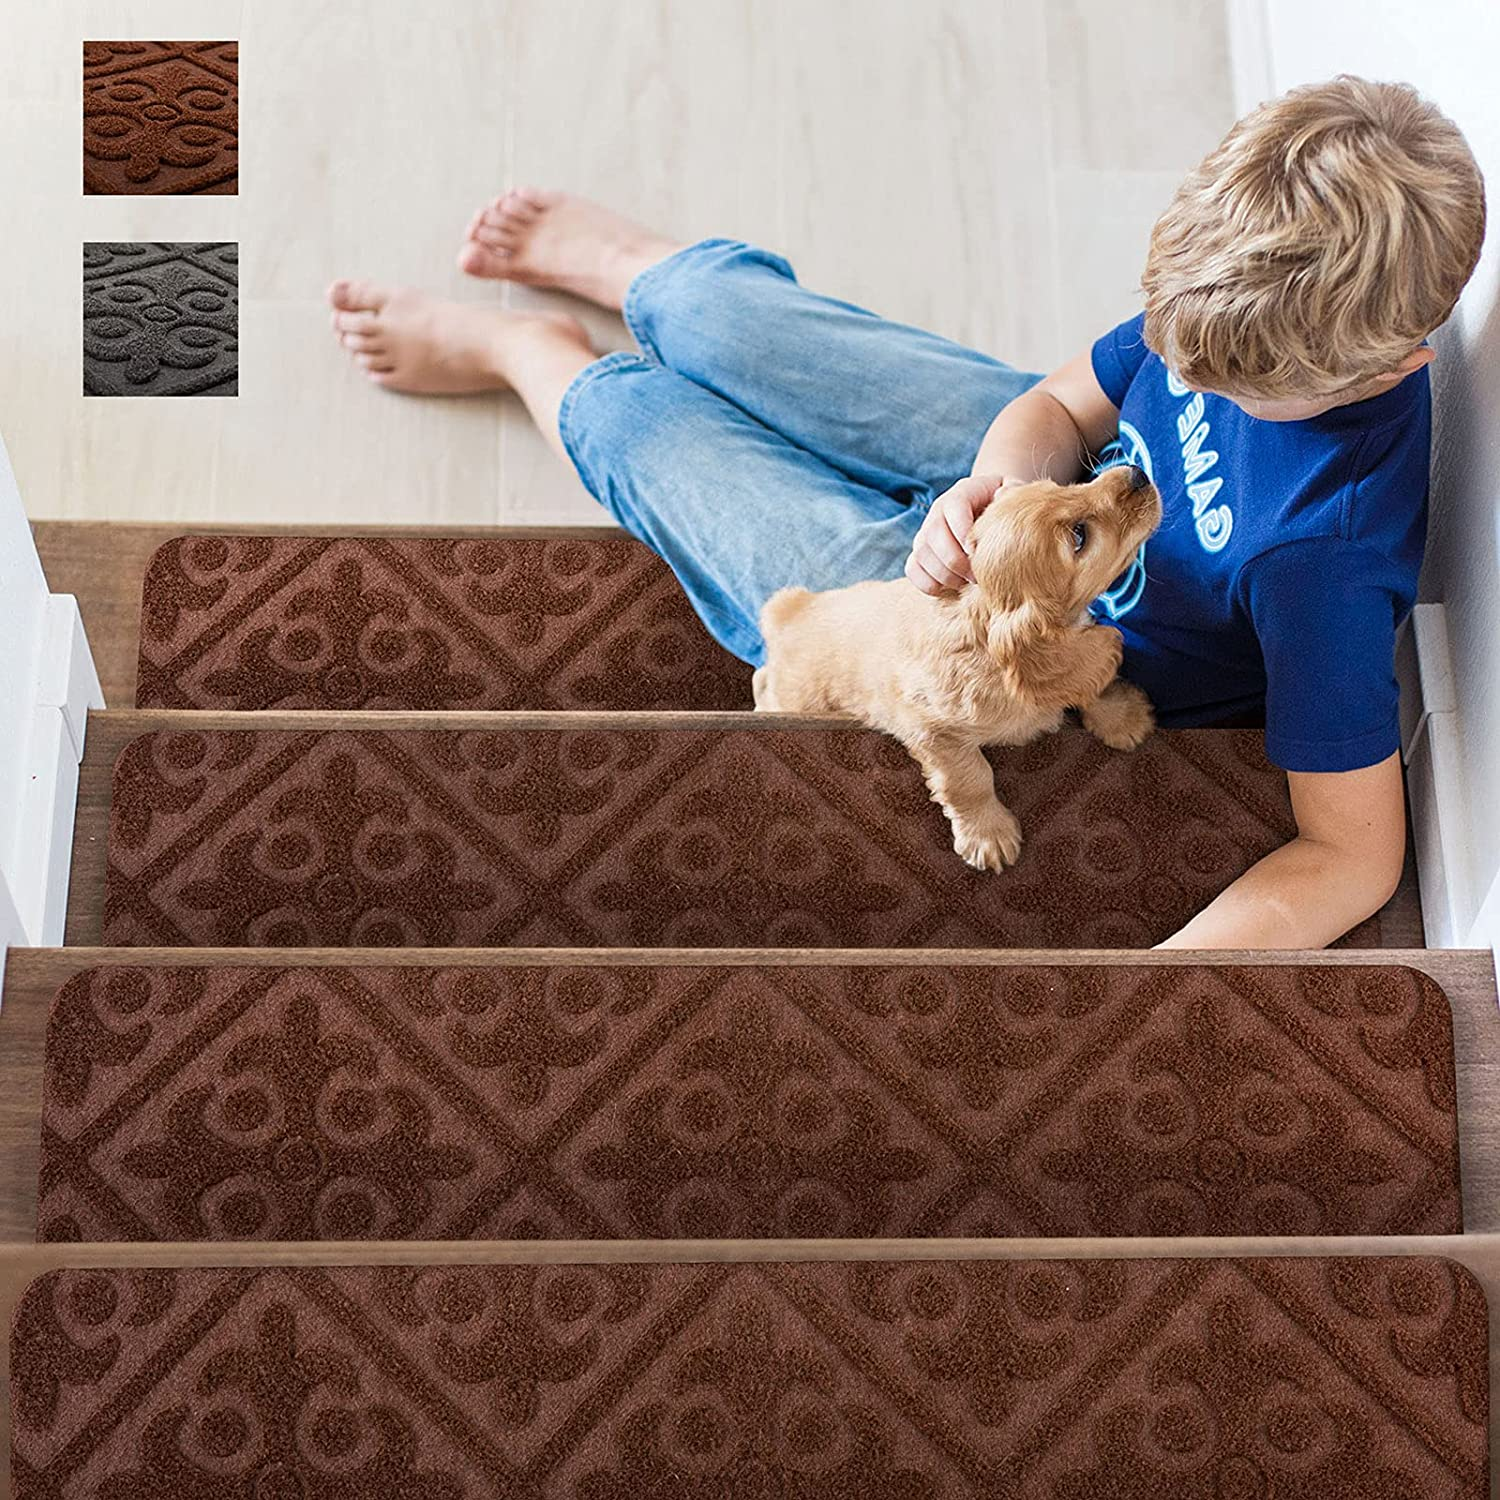 Upgraded free shipping Homluck Stair Treads Carpet Self-Adhe Slip Non Indoor Some reservation